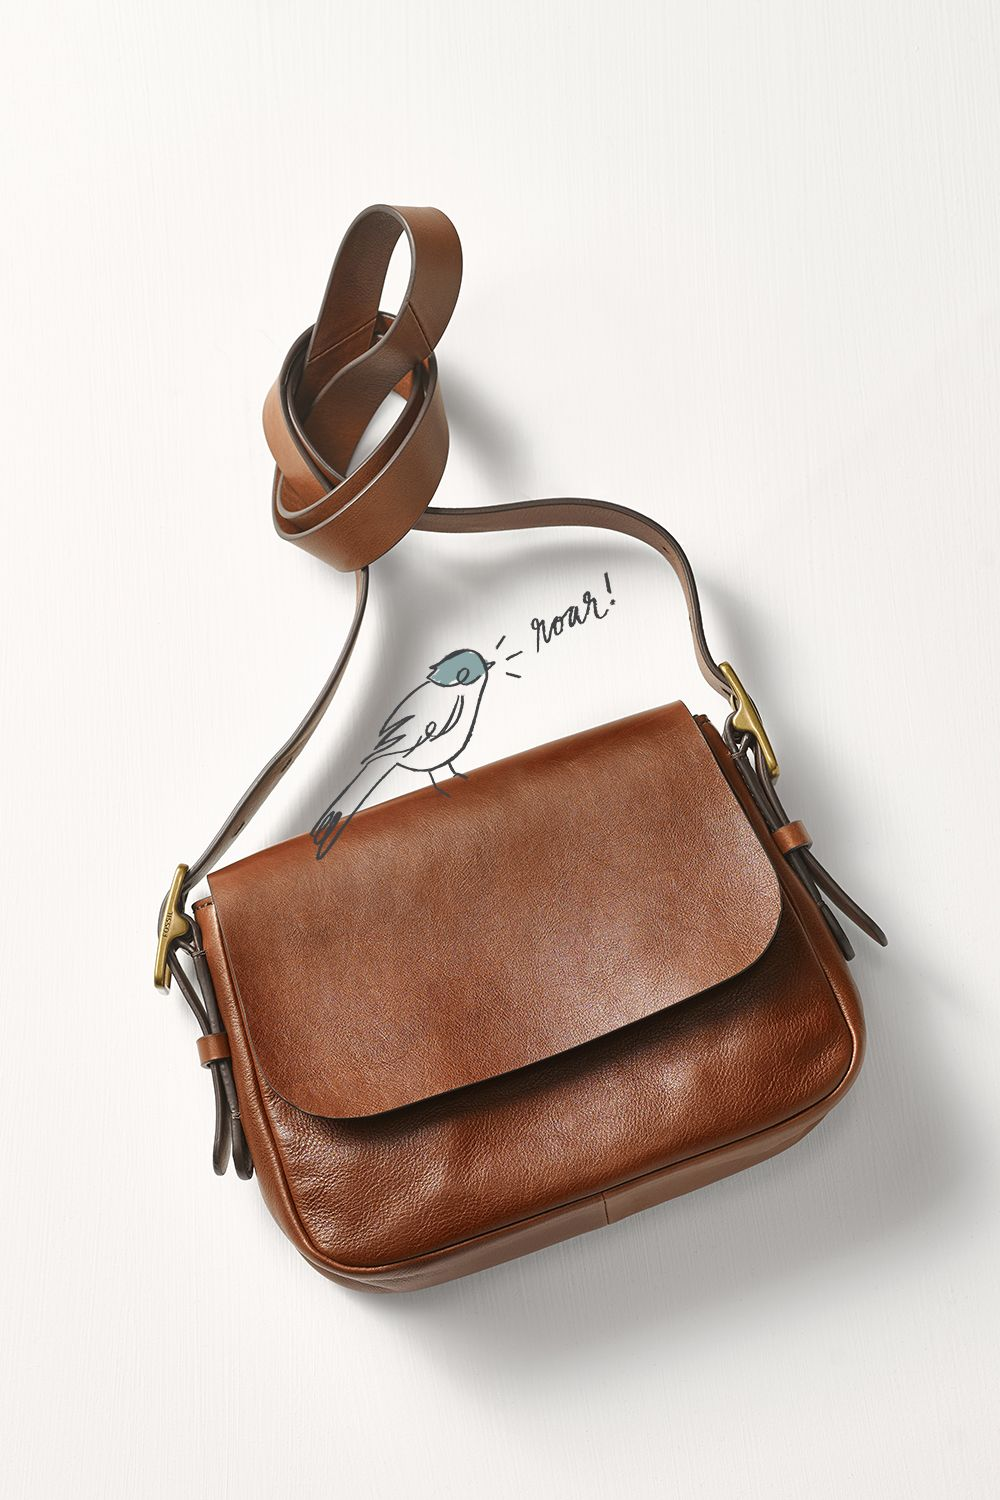 A Leather Crossbody You And Your Mom Will Love This Mother S Day